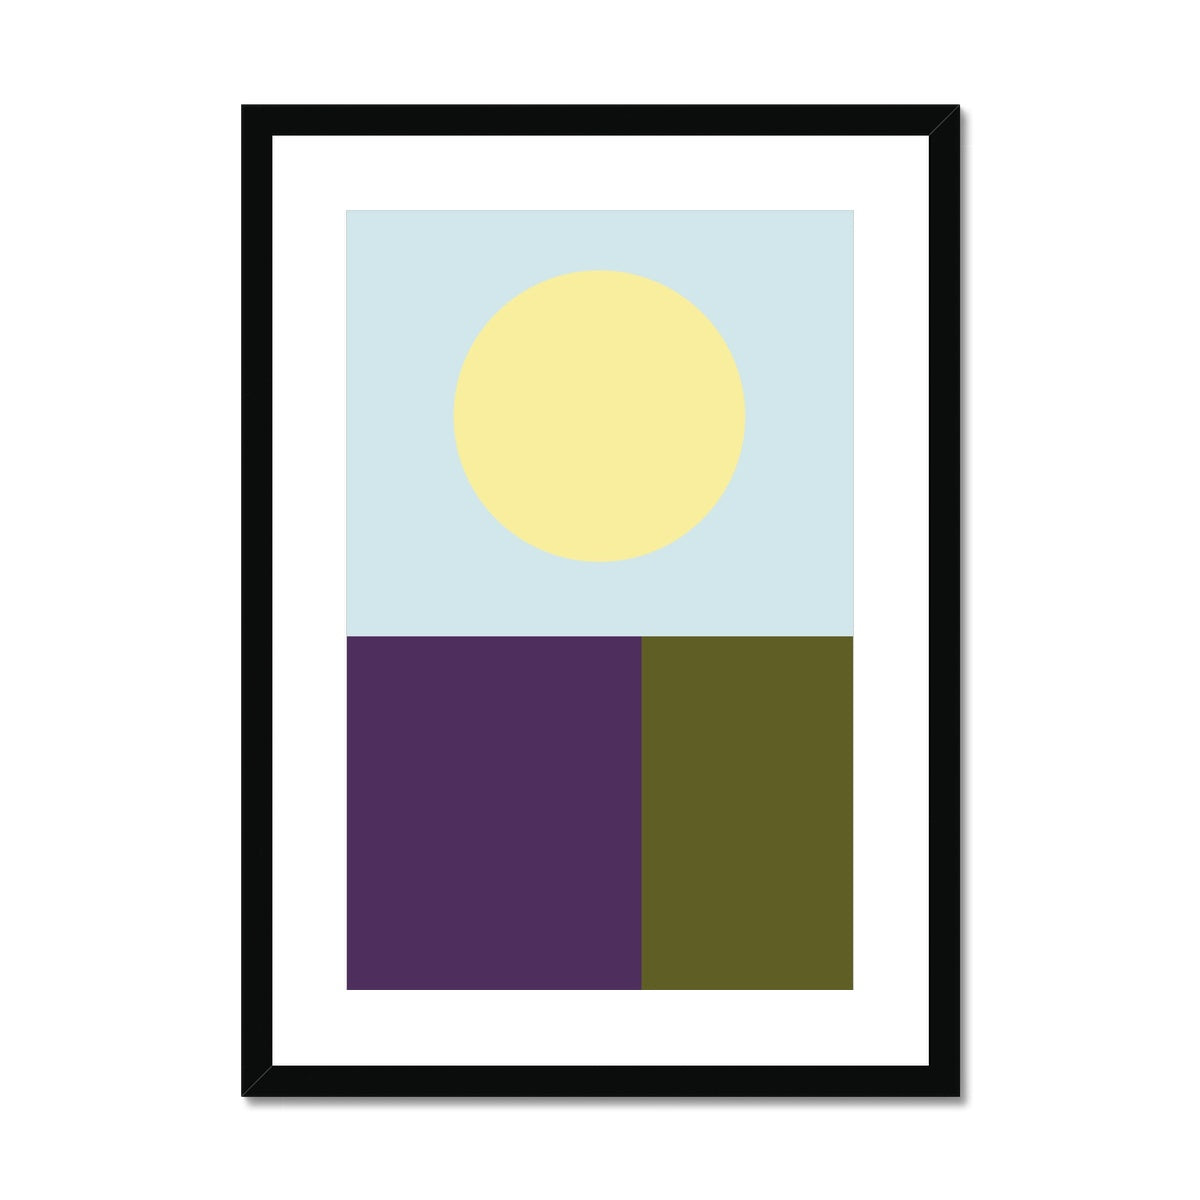 Colour Block Pt. 2 Framed & Mounted Print - HusLiving